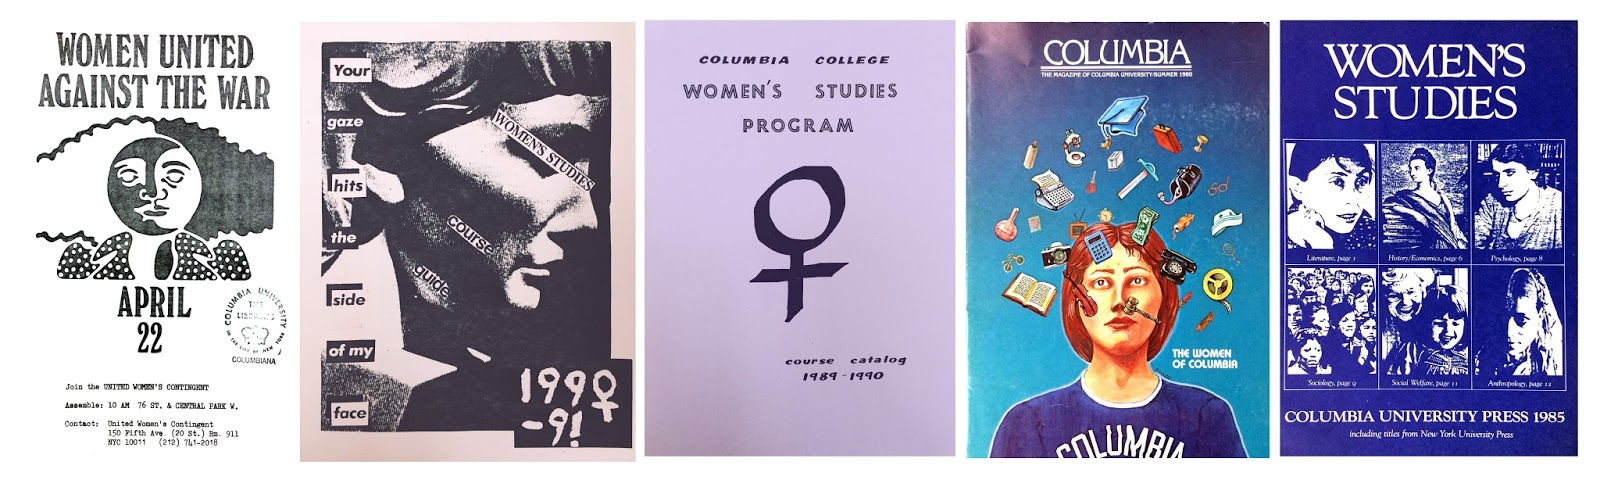 Images found in the Columbia University Archives' Historical Subject Files: Left to right, Box 260, Folder 6; Box 261, Folder 13; Box 261, Folder 13; Box 260, Folder 8; Box 261, Folder 13.